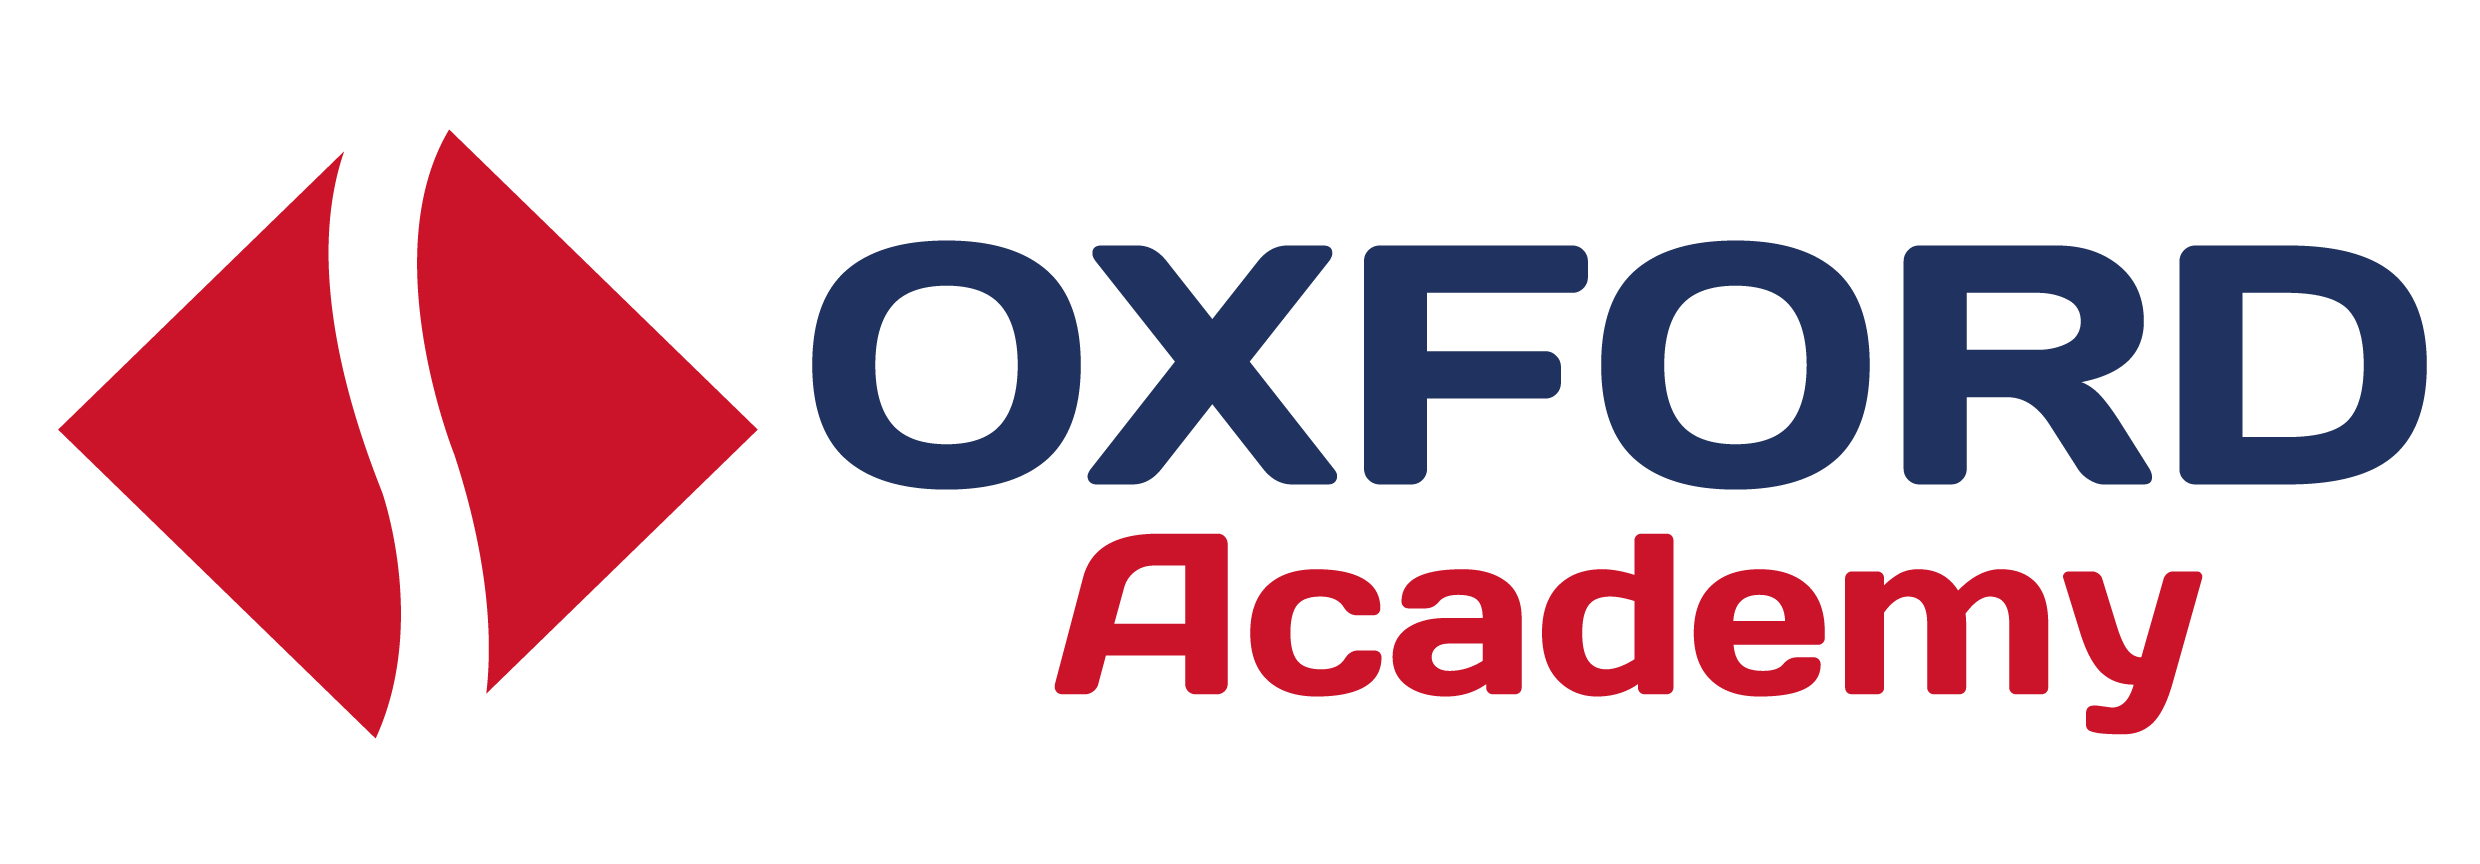 oxford-jordan-logo-horizontal